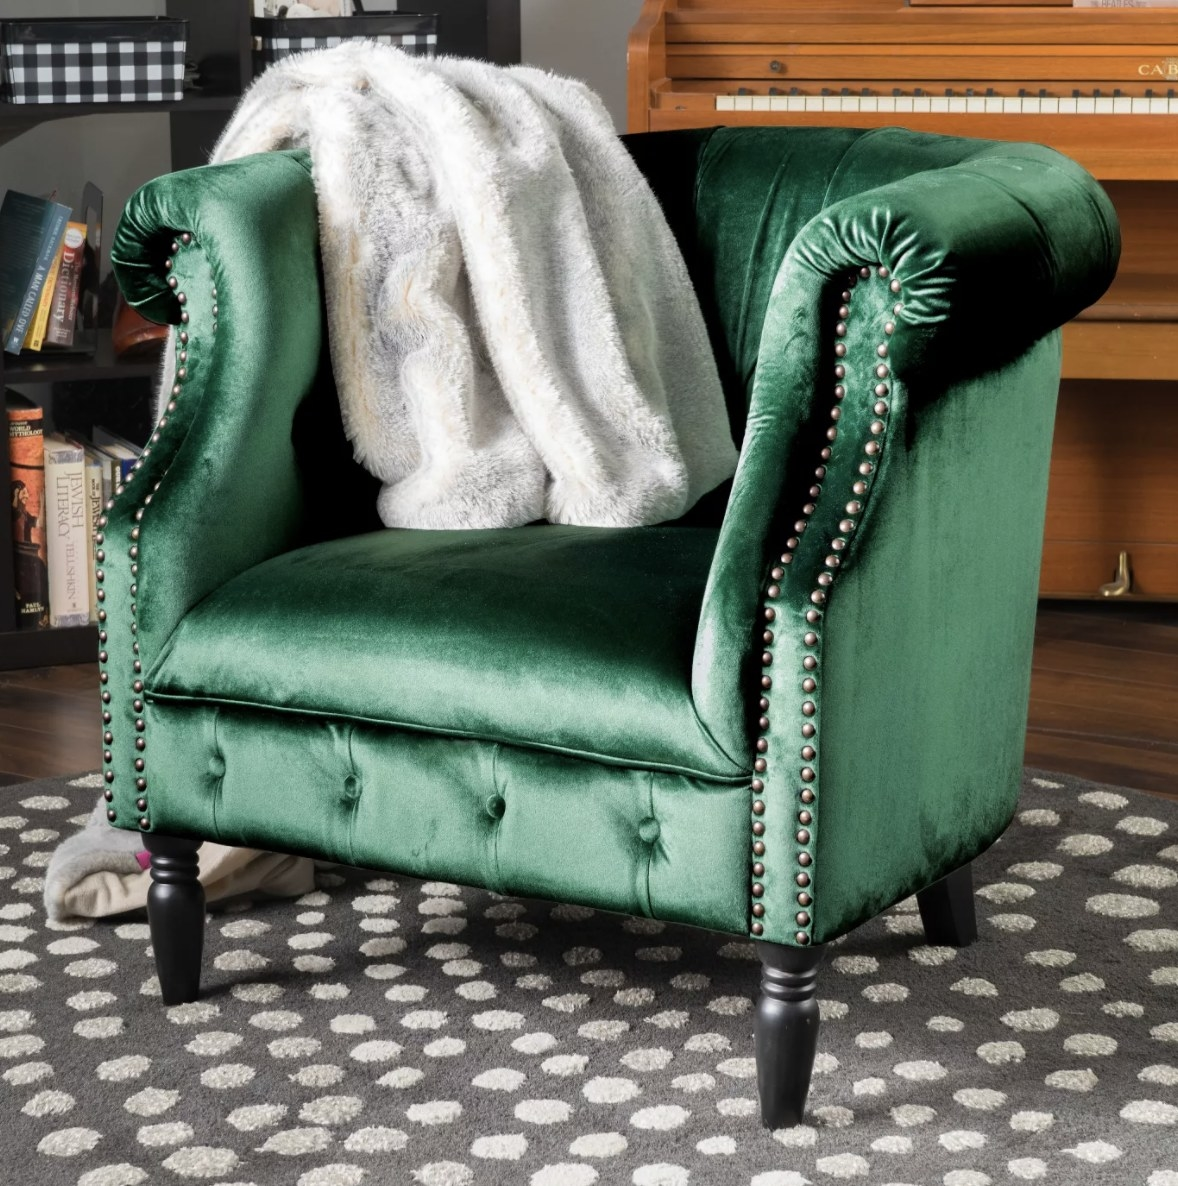 a velvet club chair in green with stud detailing on it and a white throw on top of it